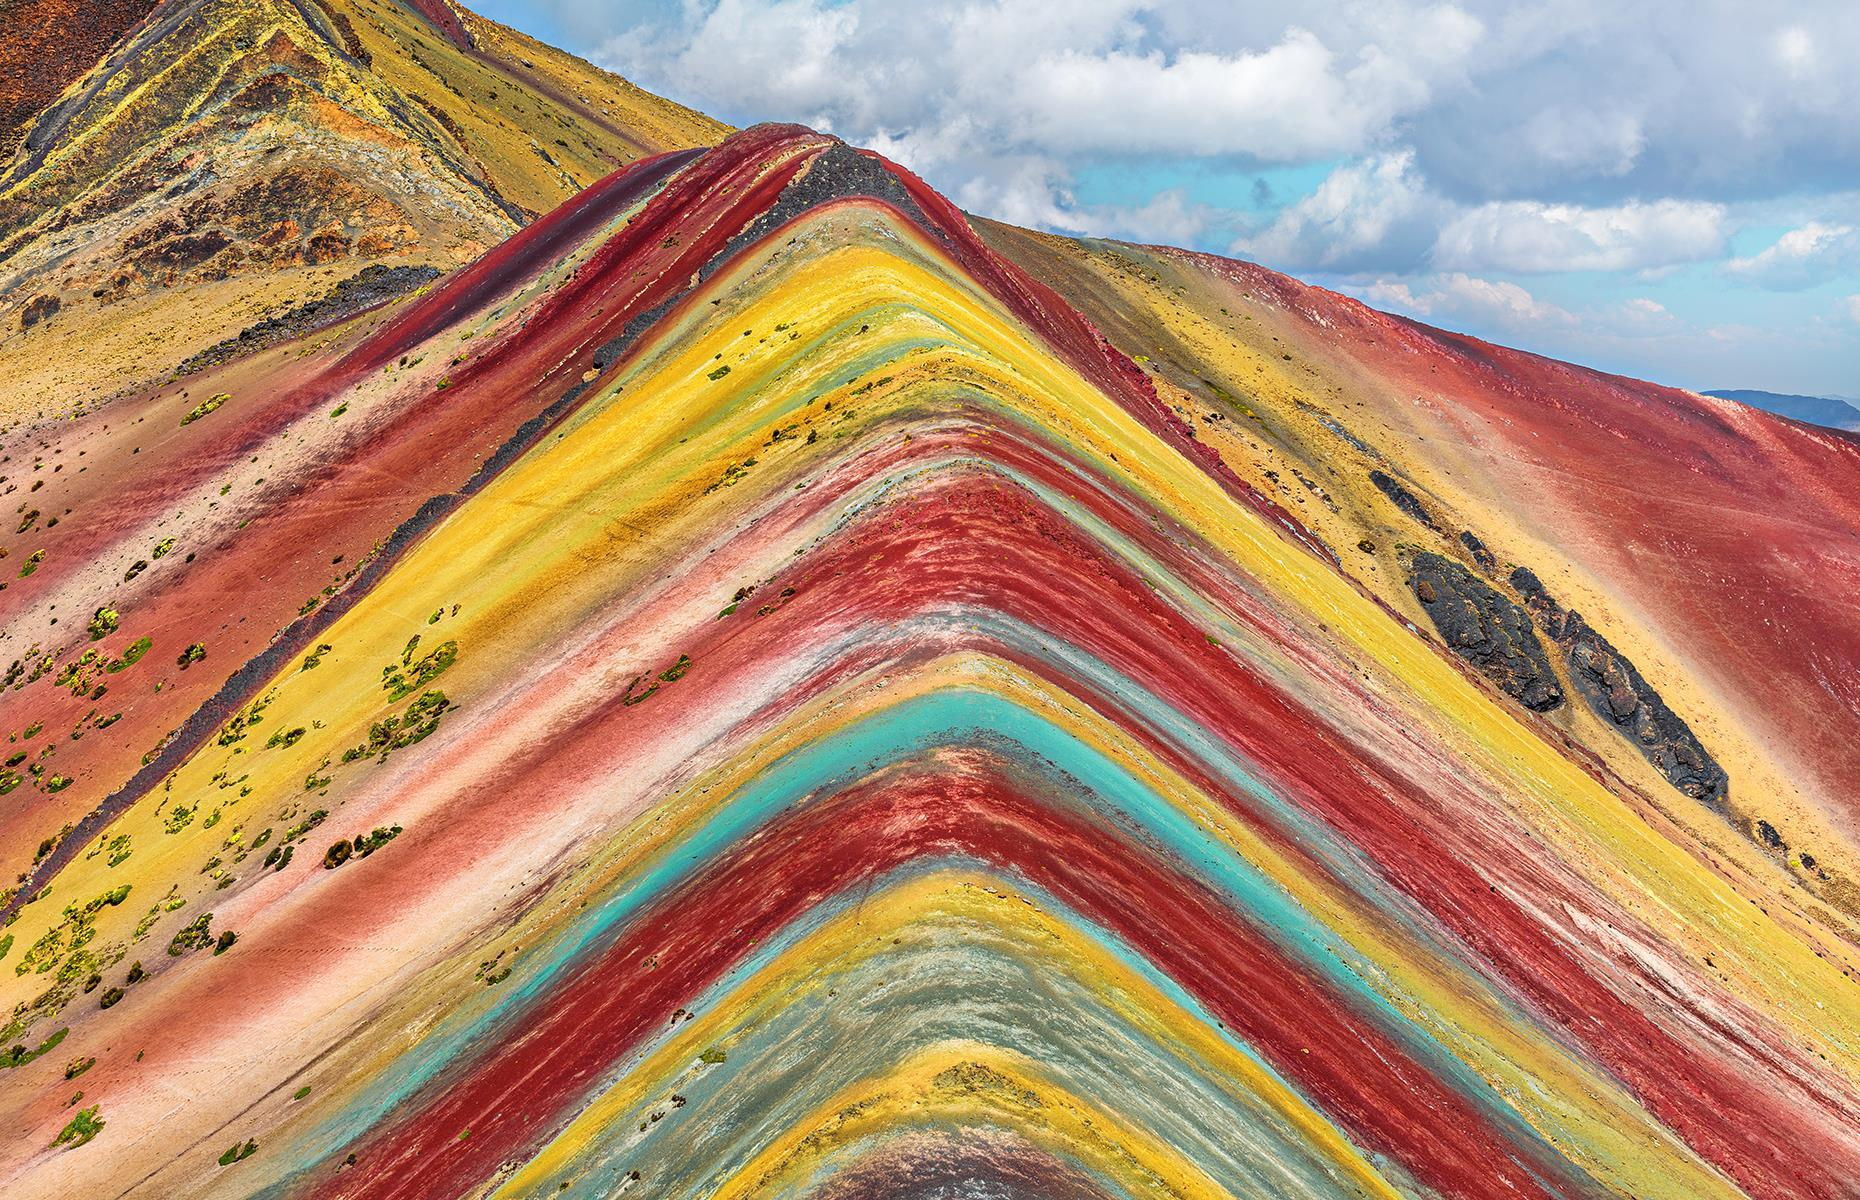 Slide 6 of 41: This multicolored mountain in the Peruvian Andes is not man-made despite what its perfectly symmetrical layers might make you think. The colorful bands, ranging from pink and red to yellow and green, are the result of sedimentary layers forming from mineral deposits over the years.